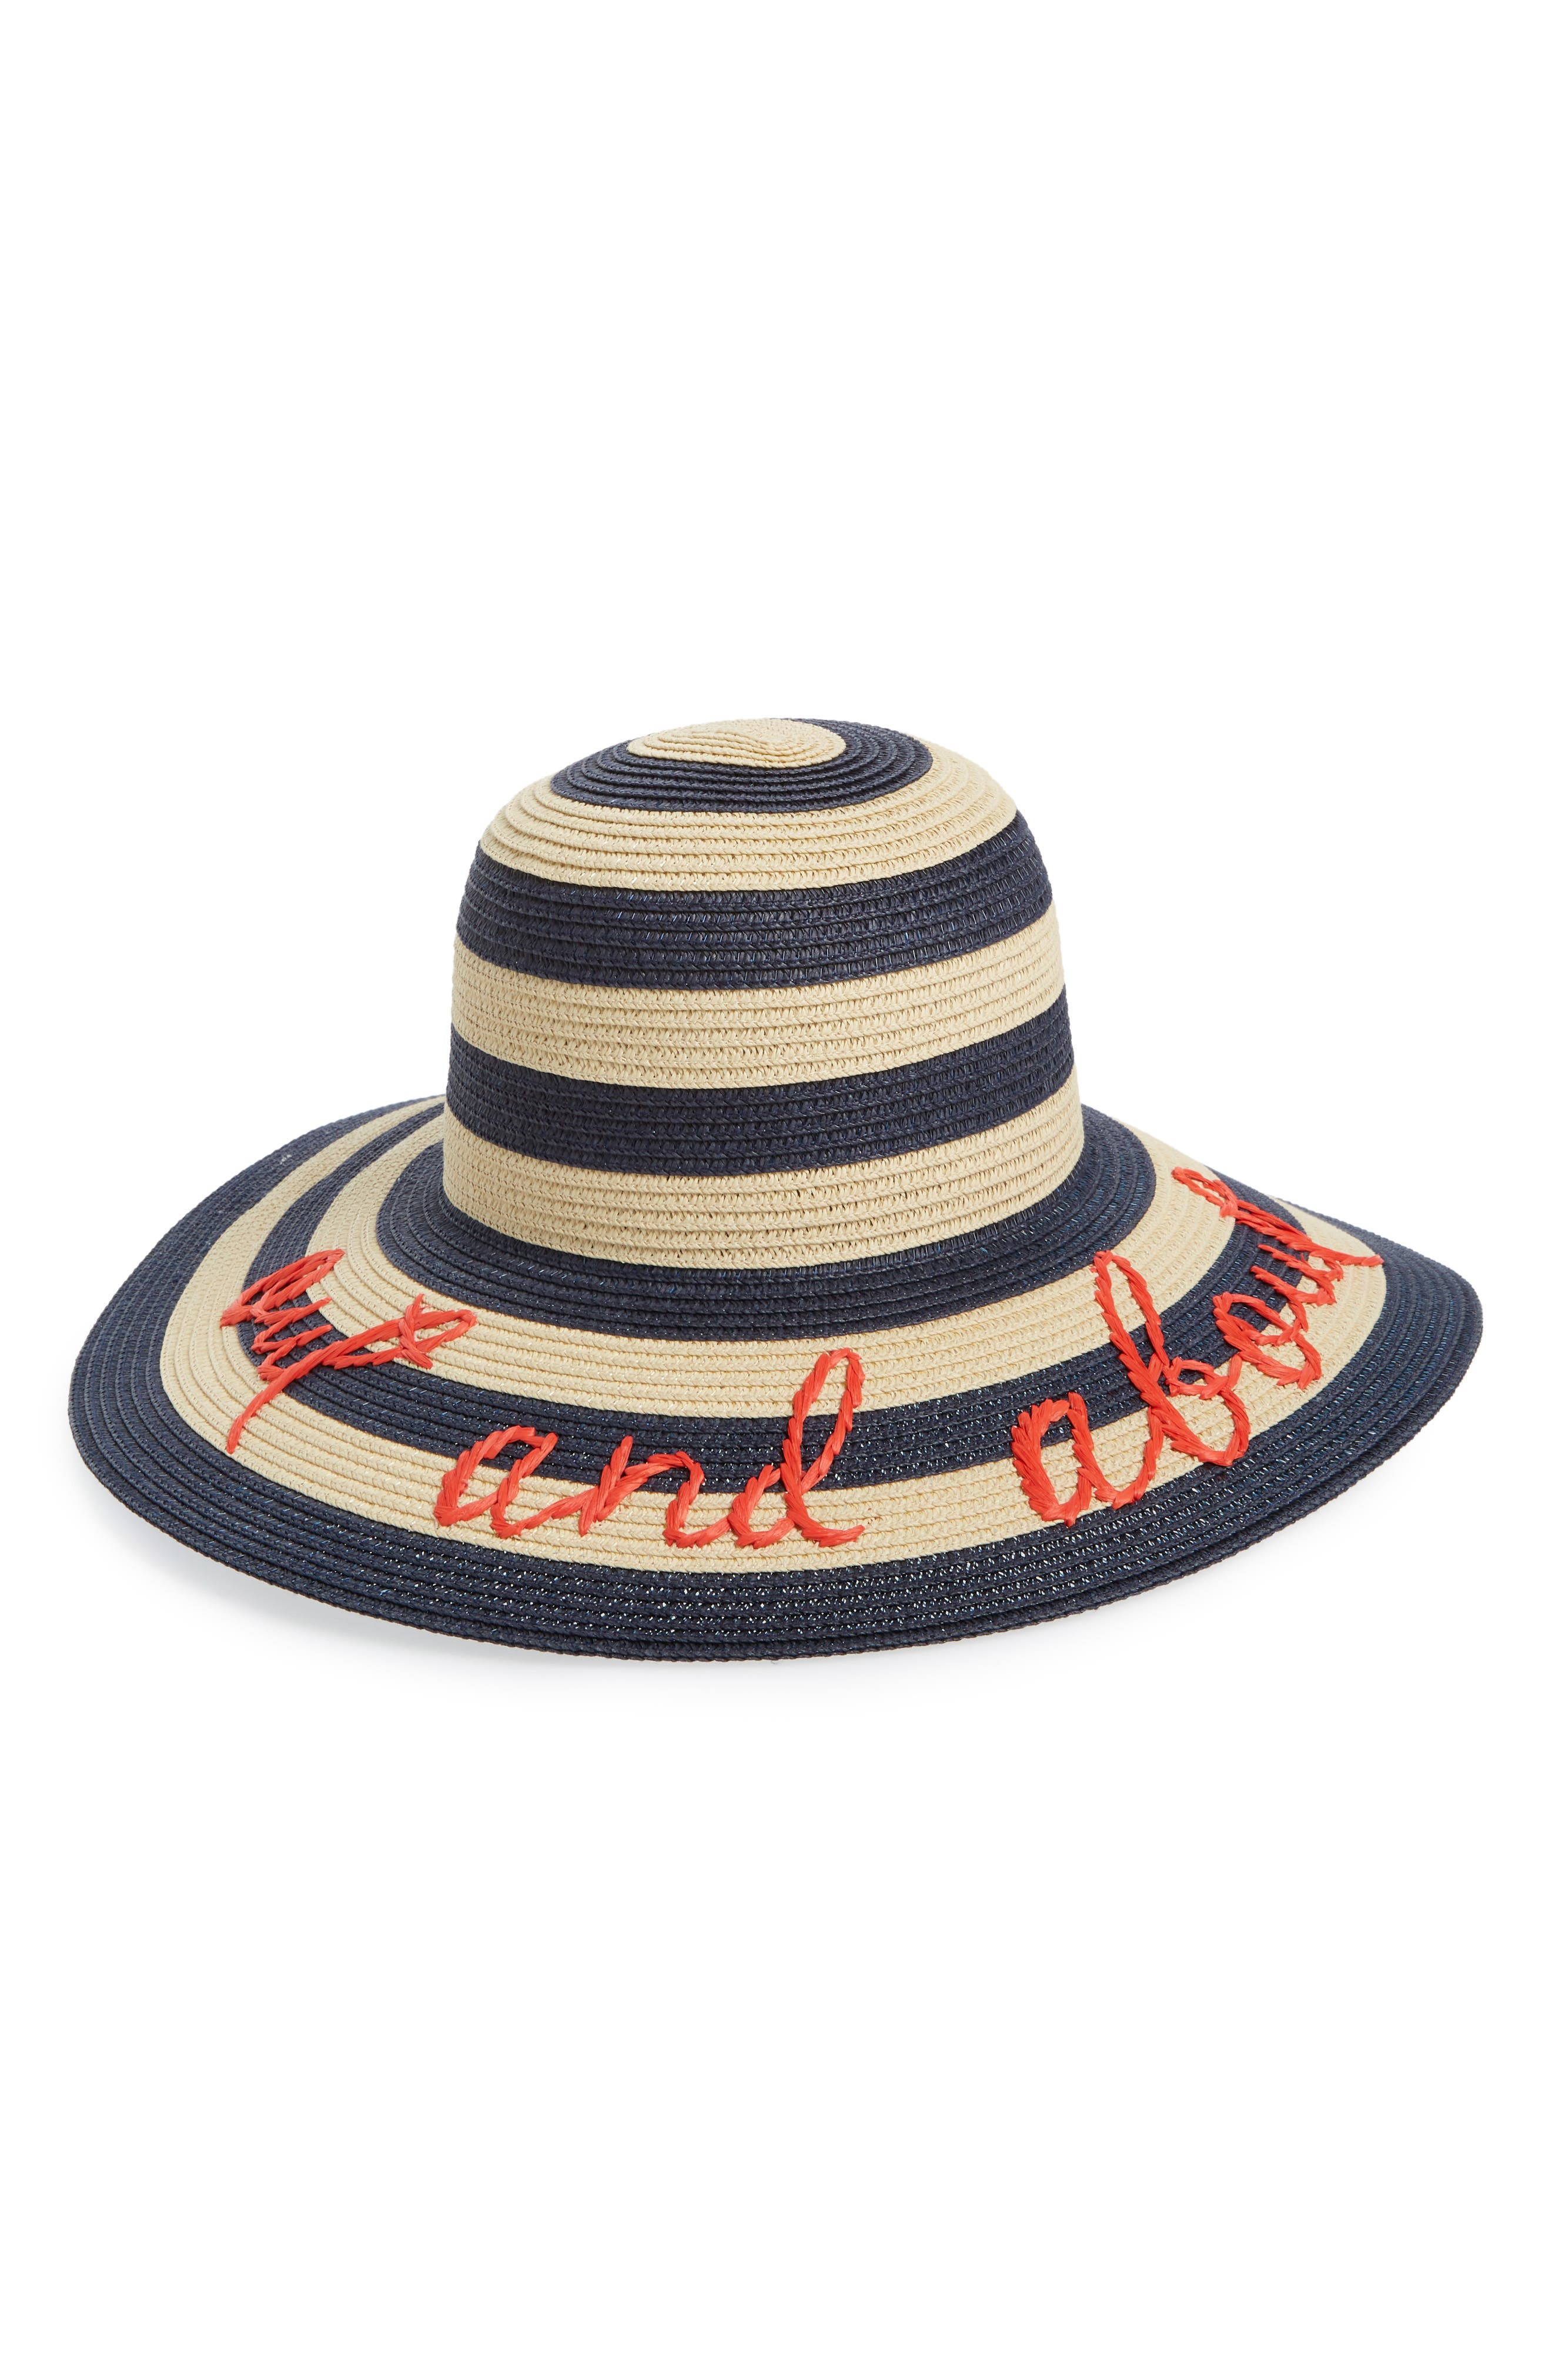 kate spade out and about straw hat,                             Main thumbnail 1, color,                             200